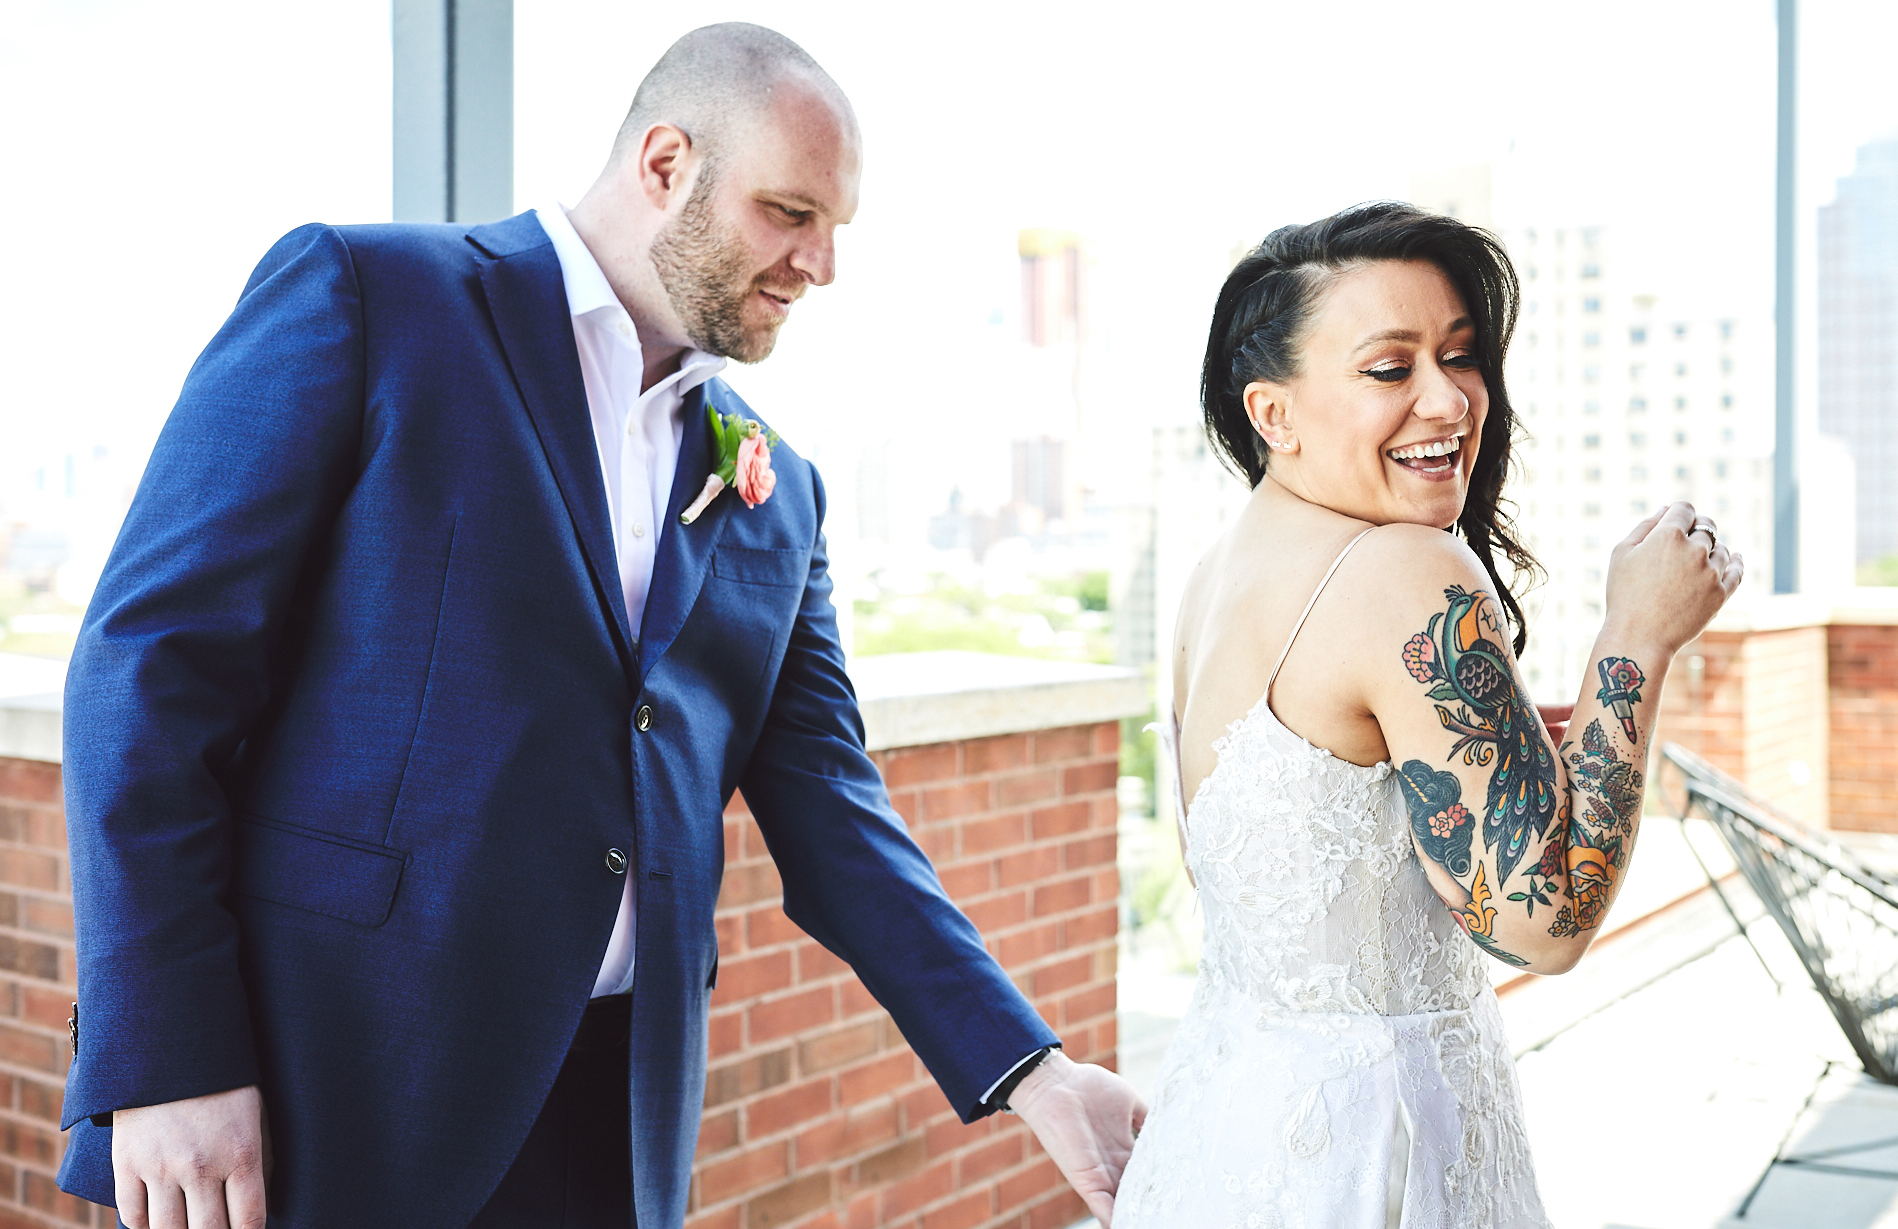 190518_SpringThreesBreweryWedding_By_BriJohnsonWeddings_0040.jpg